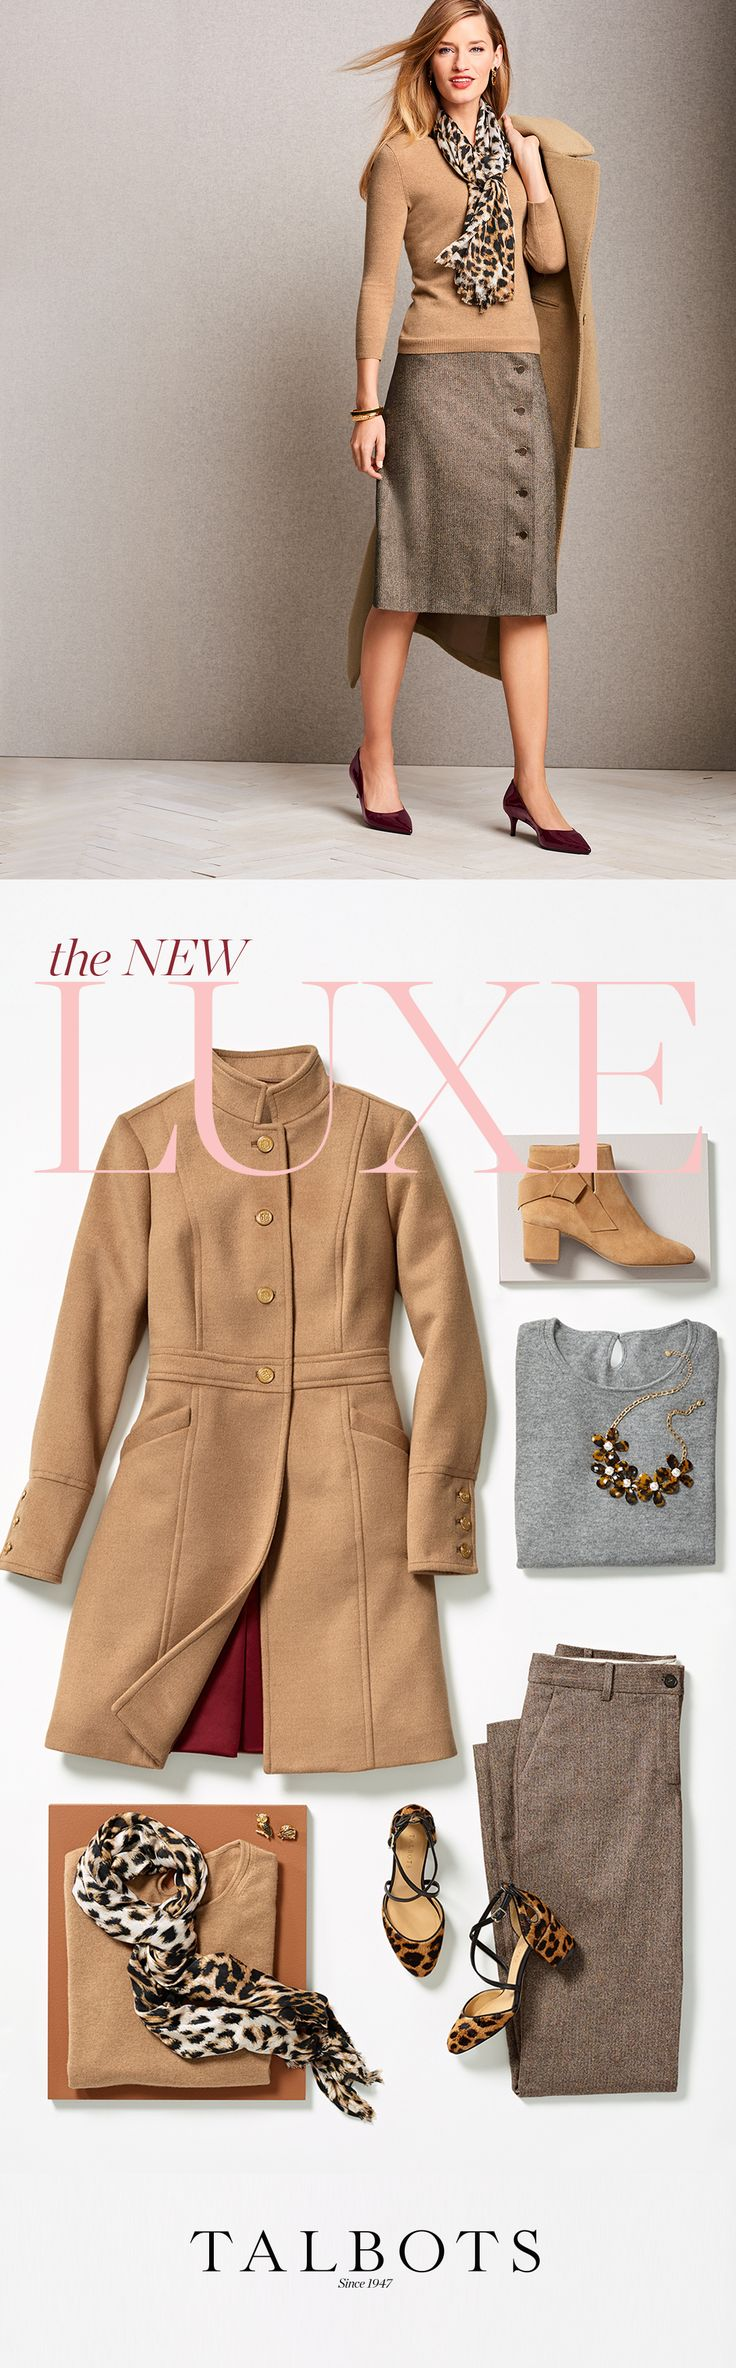 Luxurious fabrics and plush yarns go minimal in streamlined shapes. Keep everything in neutral hues for less fuss and more sophistication. Exclusively at Talbots. Shop Now.